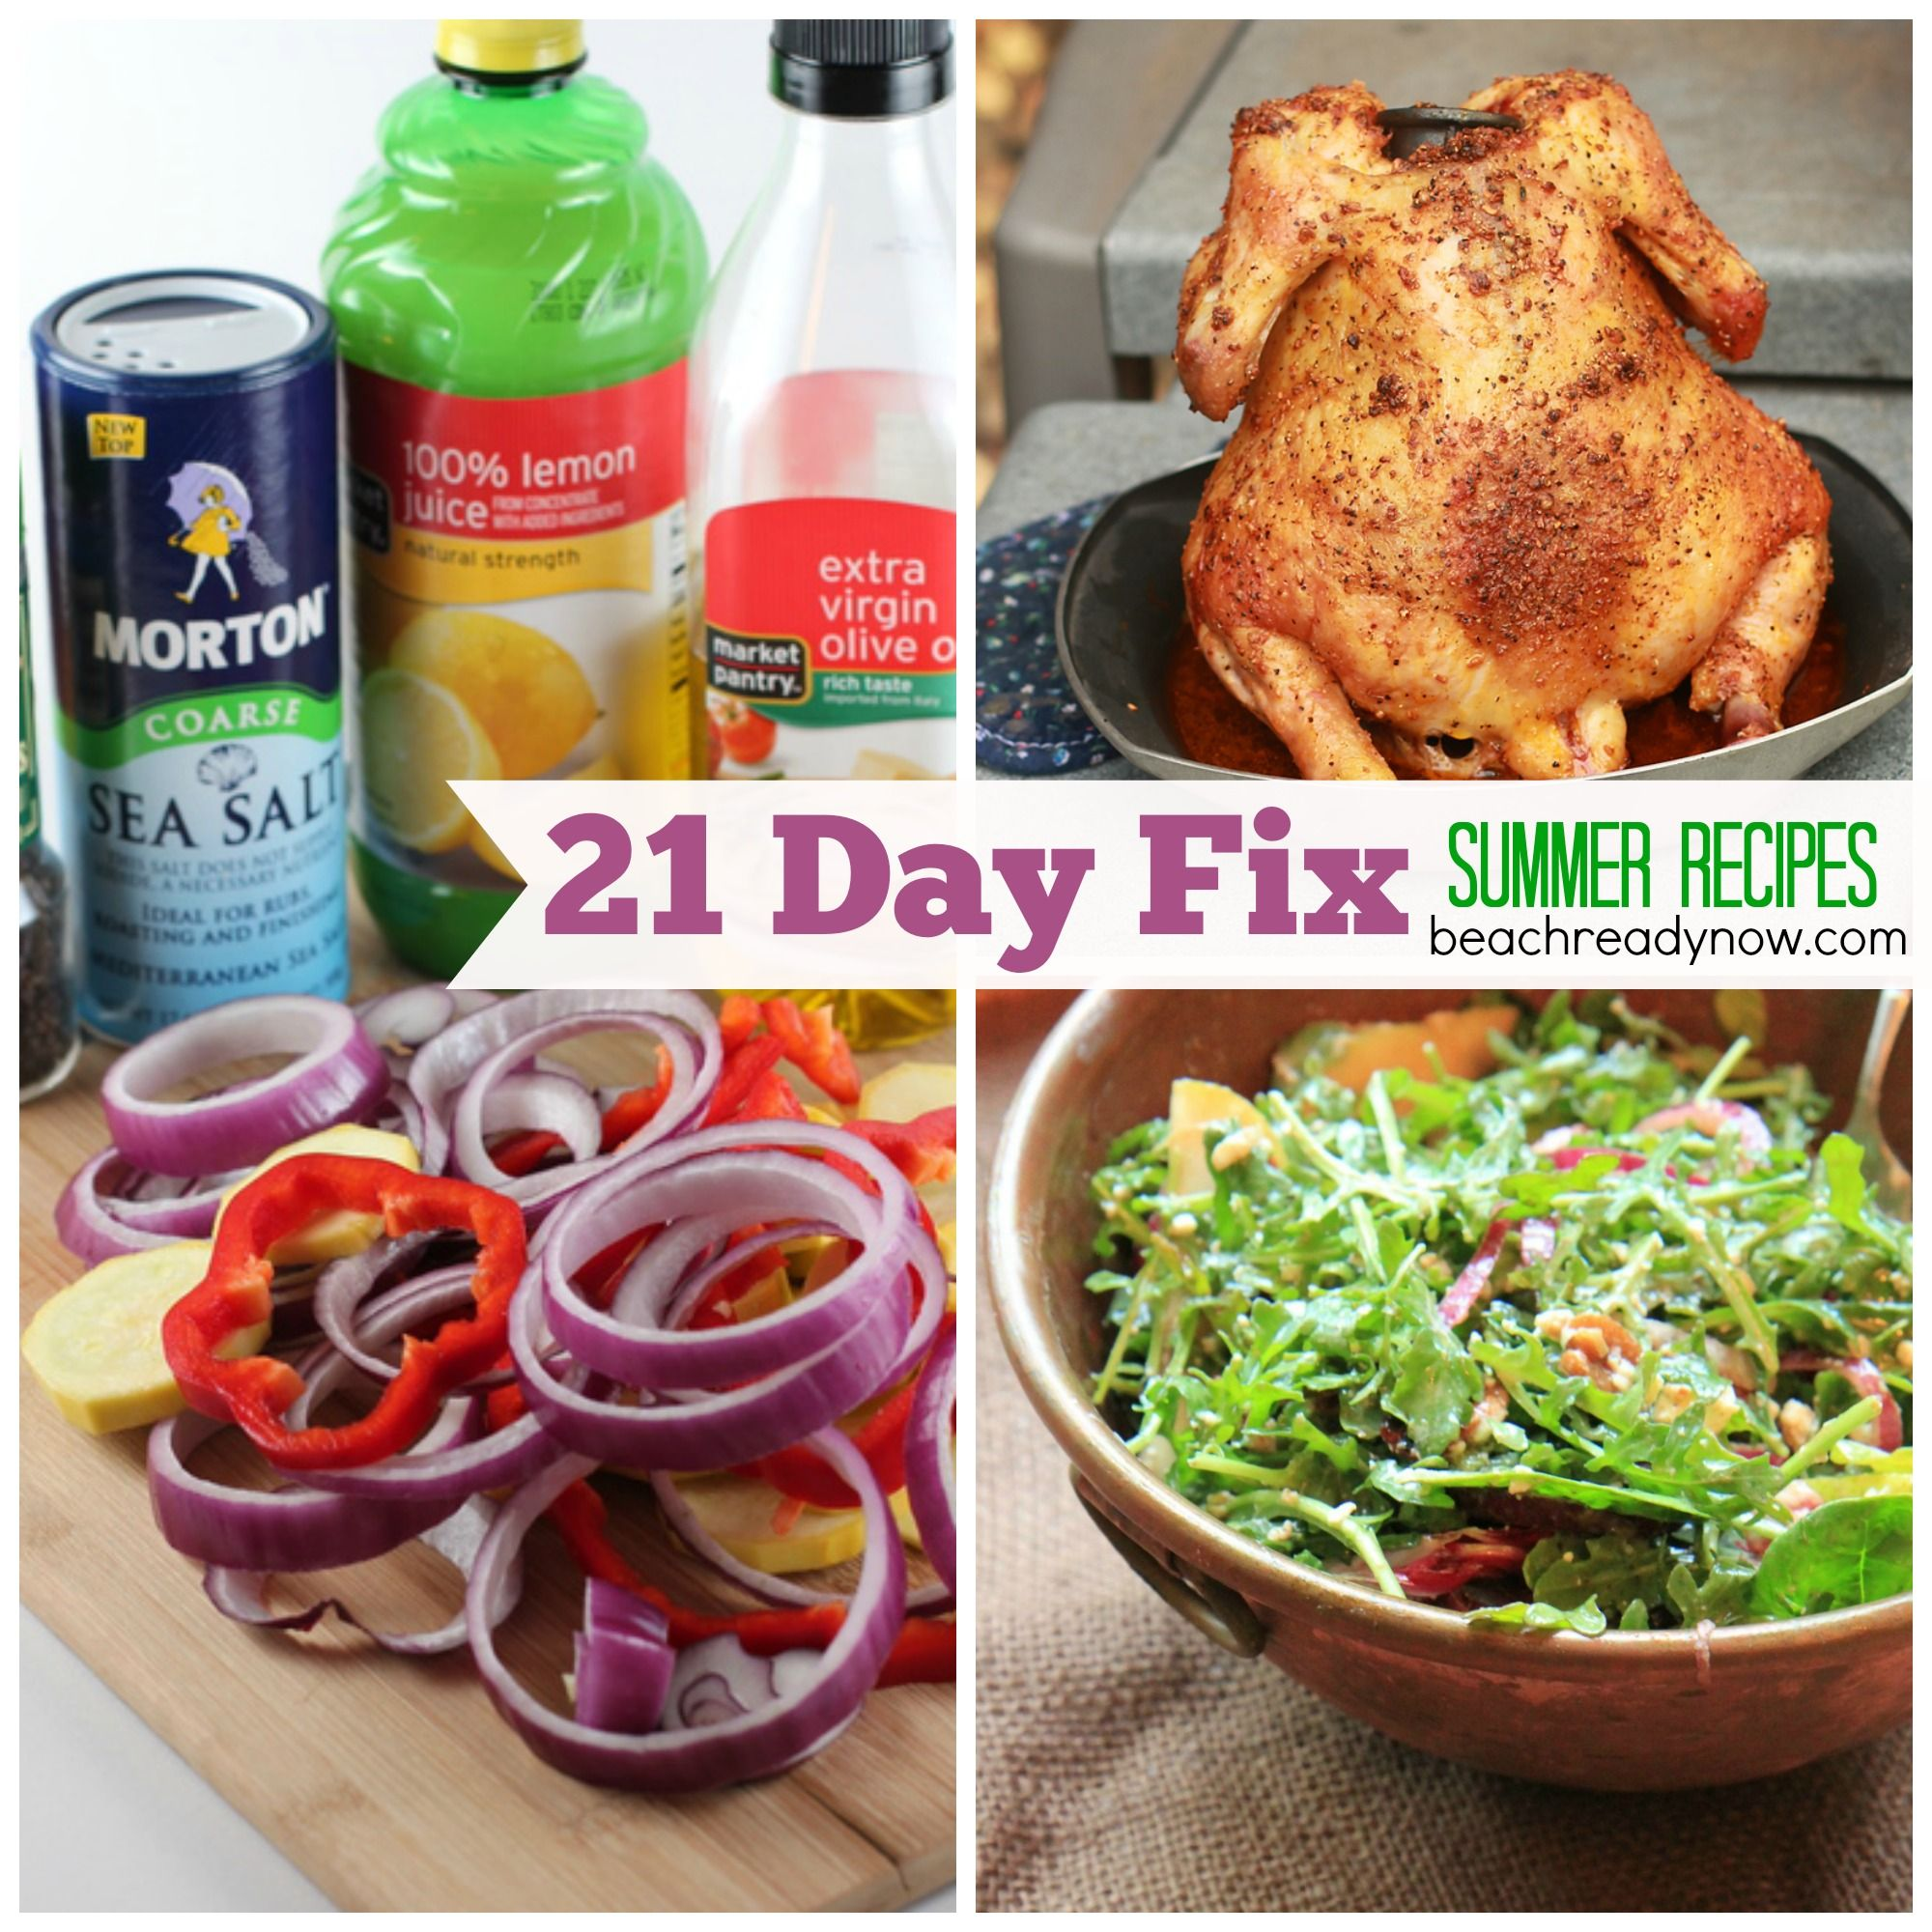 On The 21 Day Fix Going To A Grill Out Potluck Or Family Get